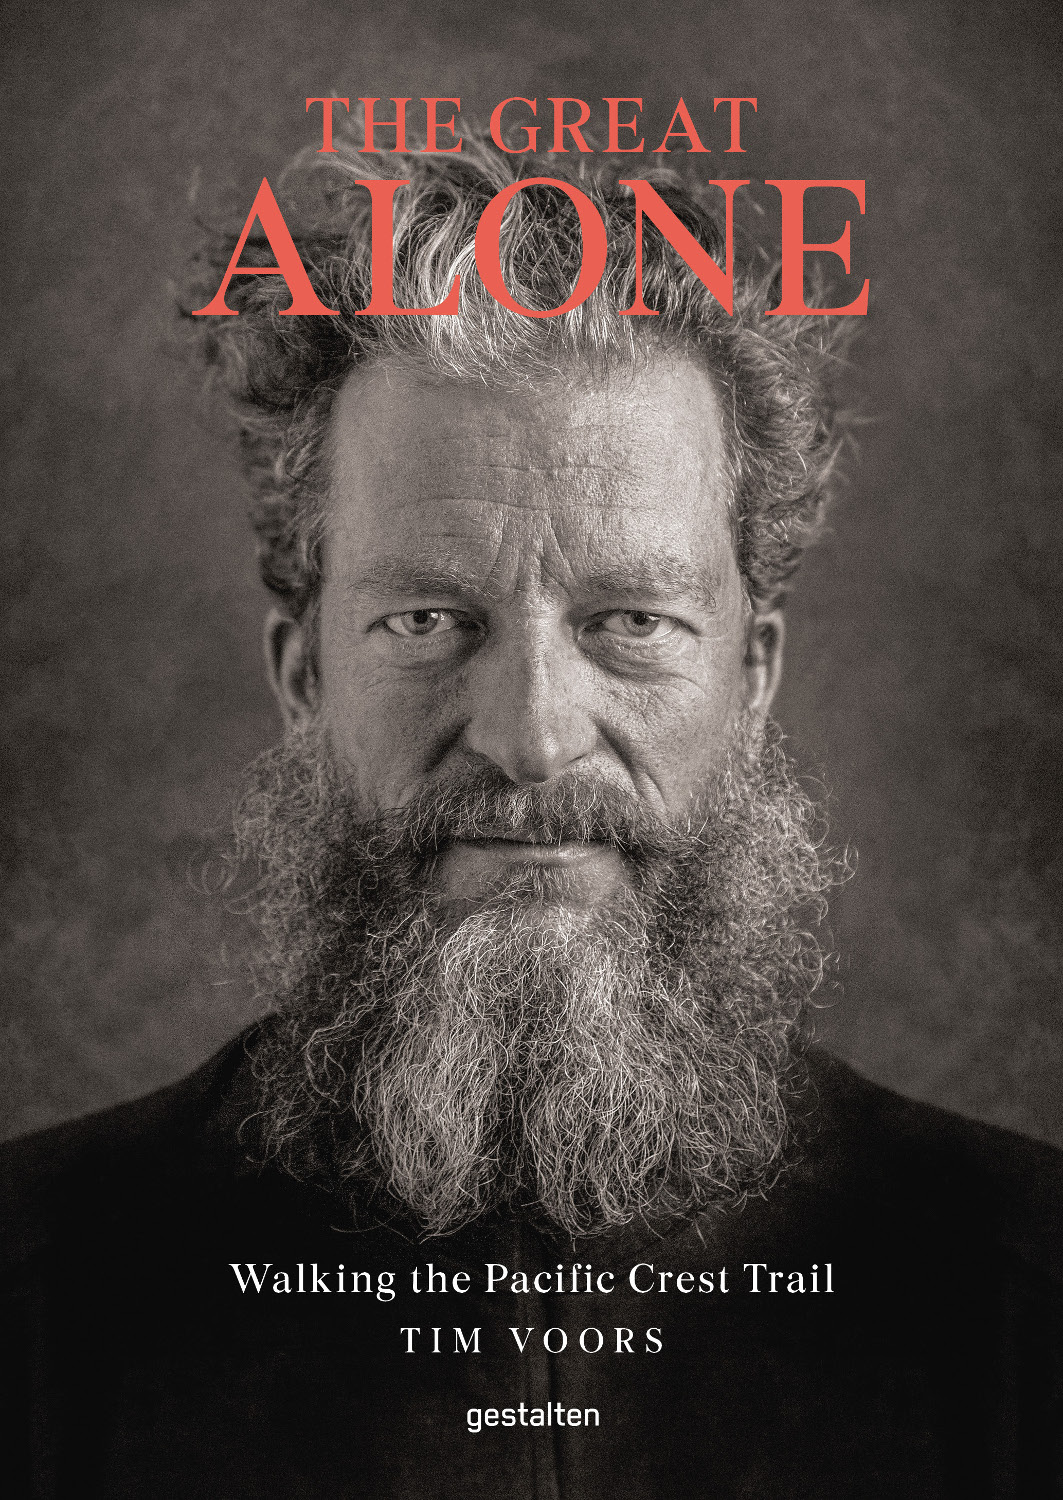 The cover of The Great Alone.